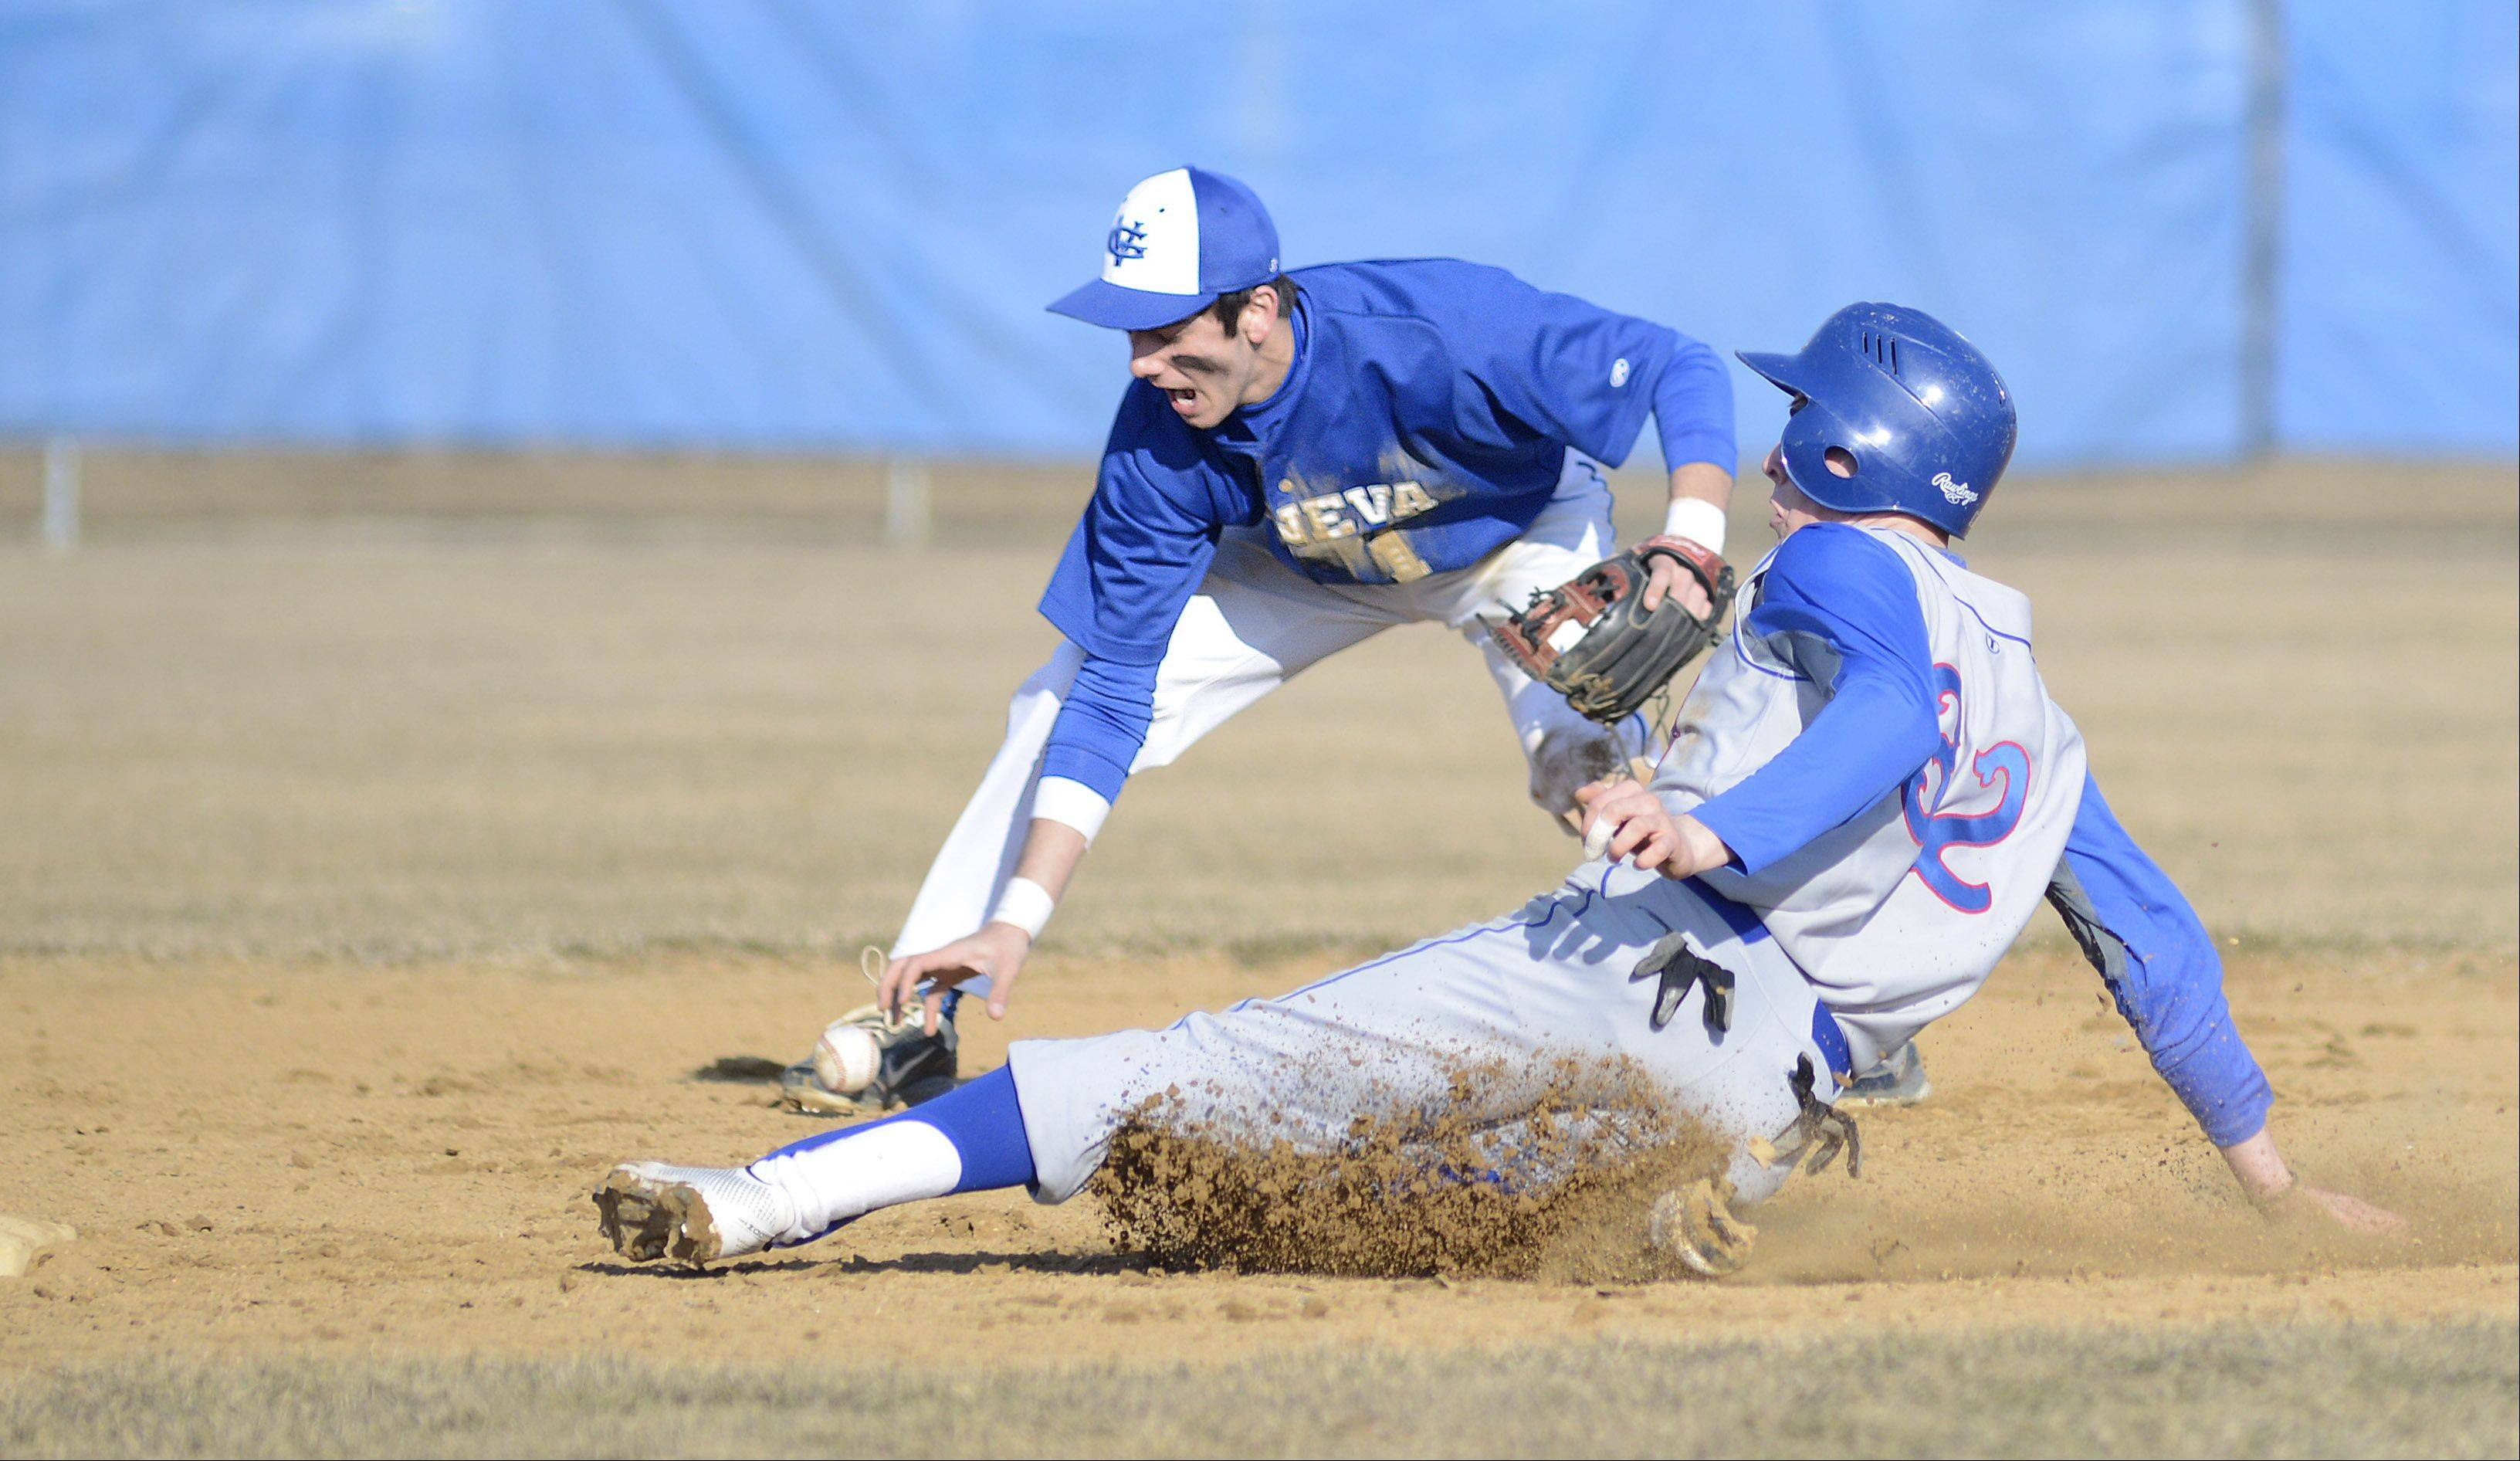 Marmion's Edgar Sanchez is safe on second after the ball bounces away from Geneva's Luke Polishak's hand in the fourth inning on Thursday, March 28.